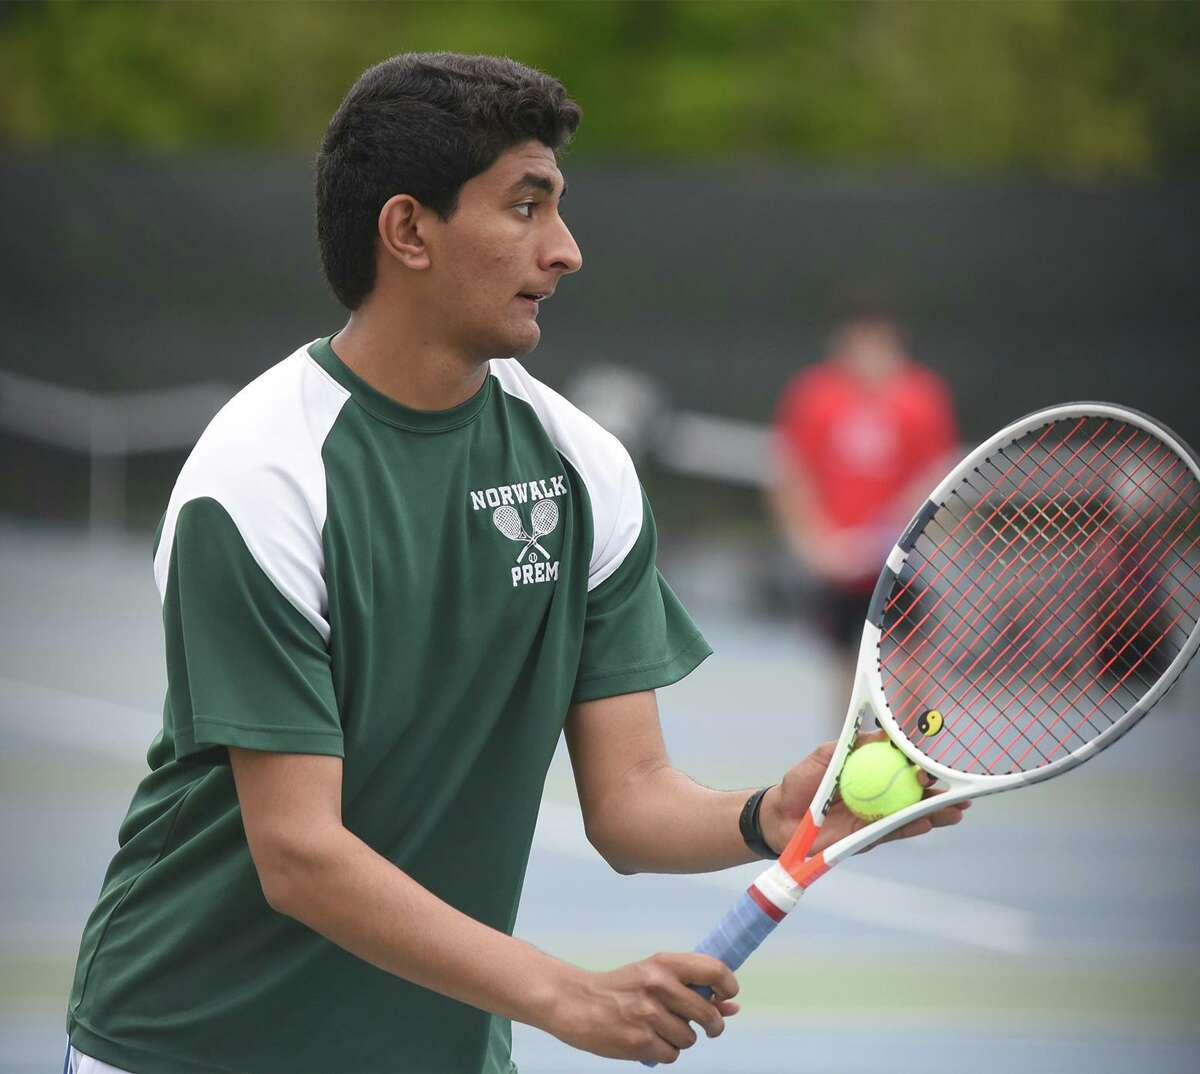 Norwalk's Prem Dave gets set to serve during a match in New Canaan on May 10.